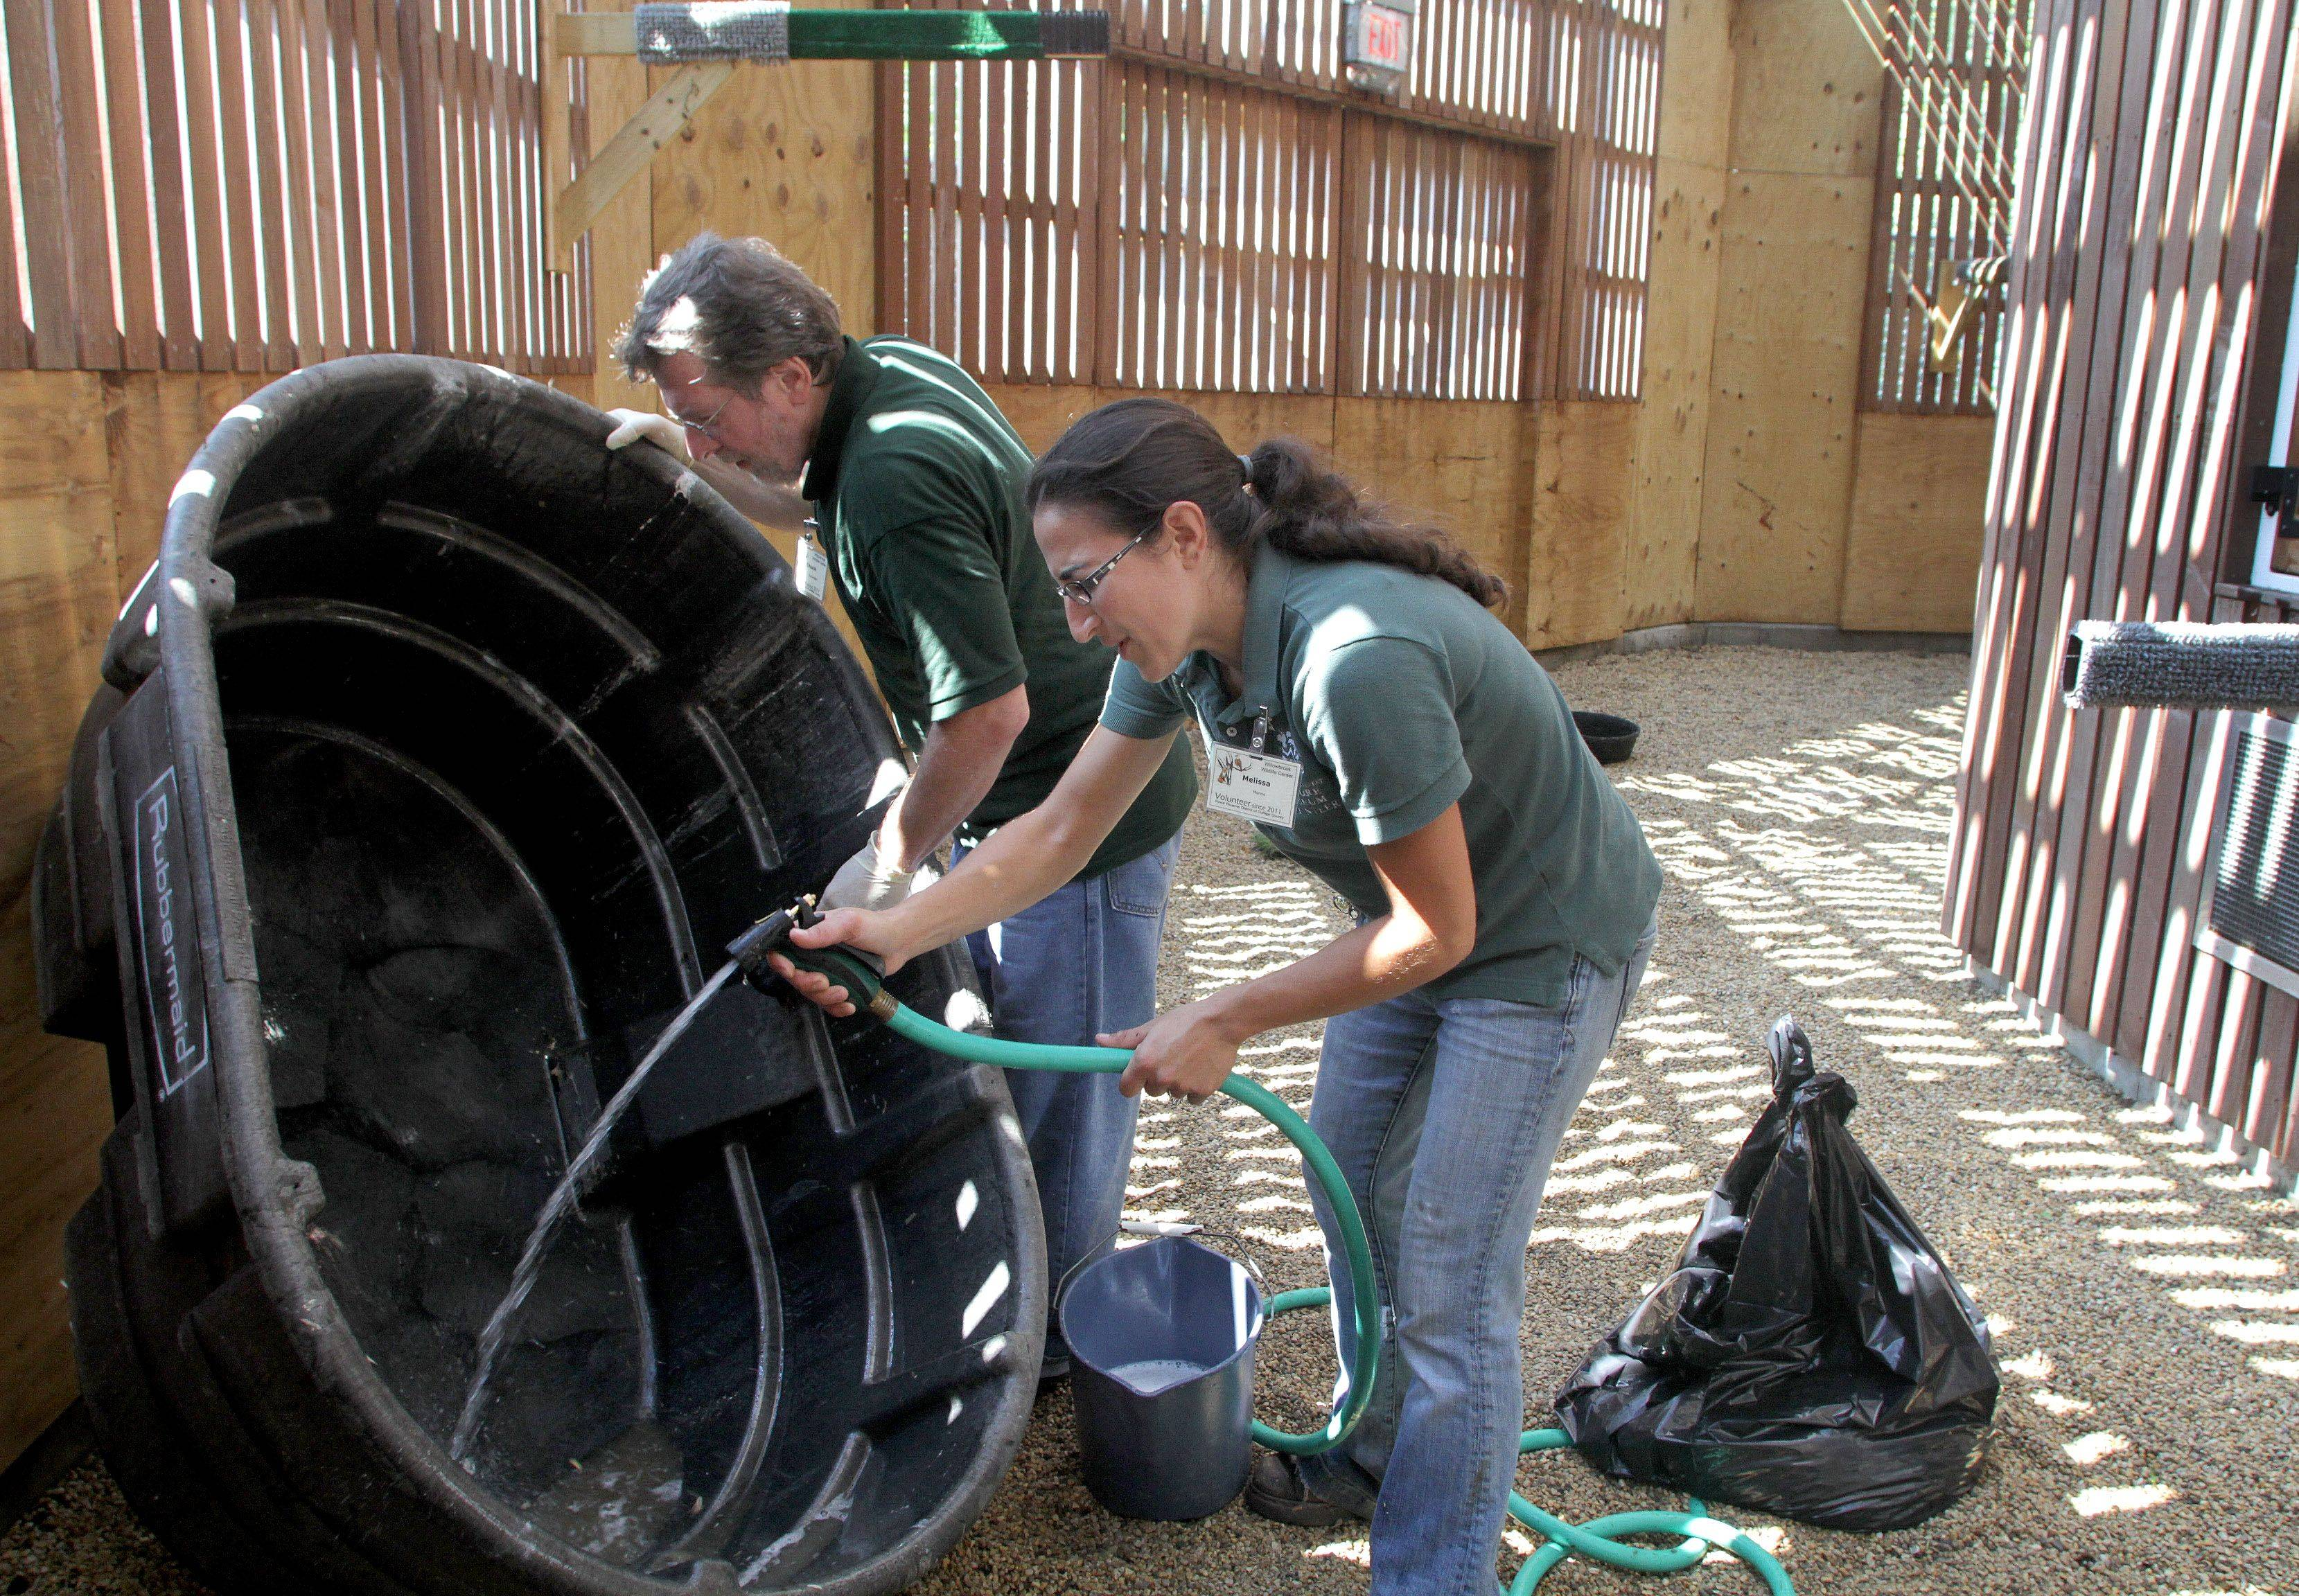 Animal care volunteers Chuck Sylvester and Melissa Monno clean out a tub in the Raptor Flight Facility at the Willowbrook Wildlife Center in Glen Ellyn. The center has up to 100 active volunteers at any given time in the animal care department.